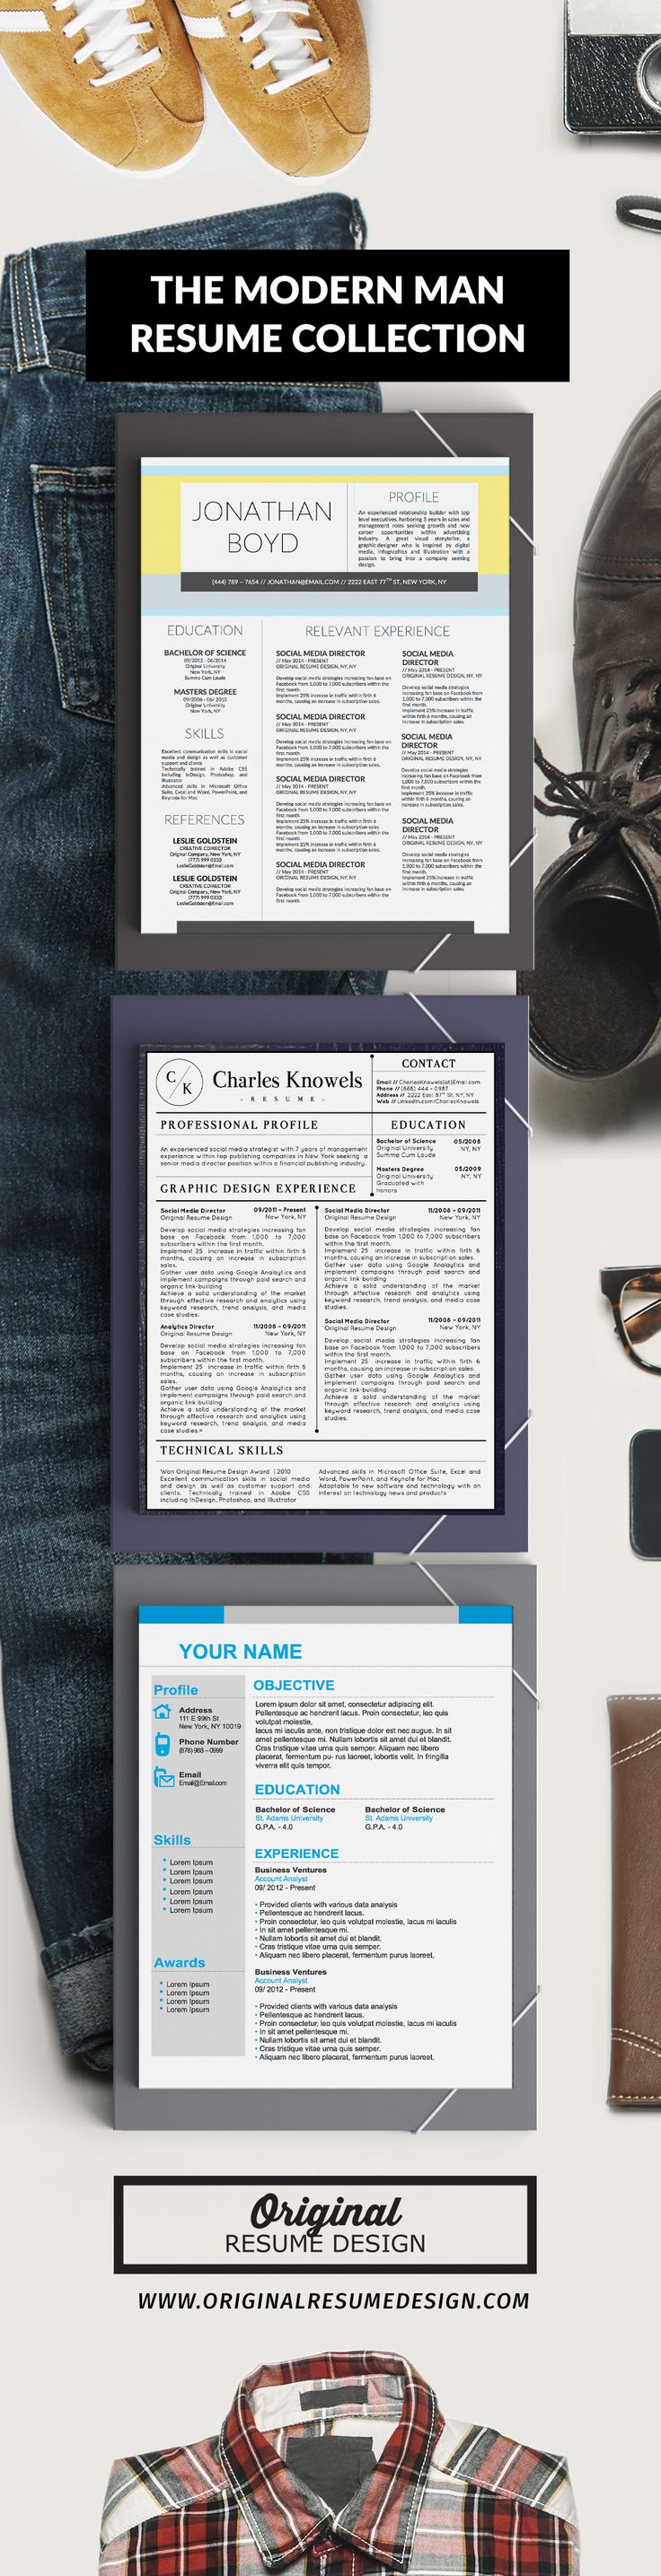 3 Modern Resume CV Designs for MS